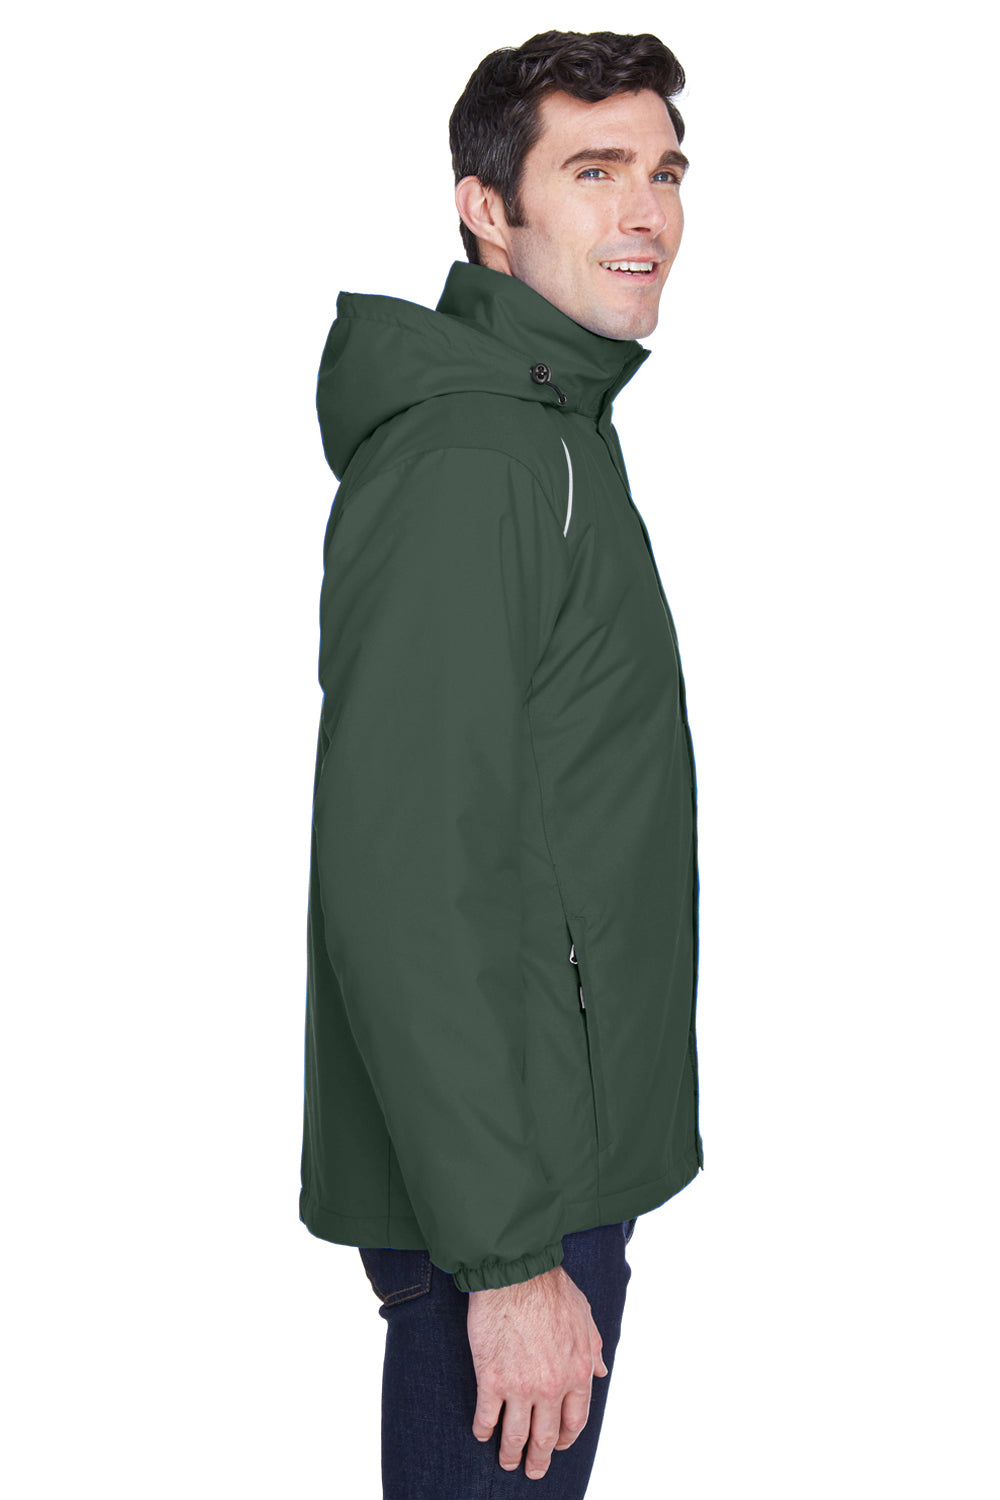 Core 365 88189 Mens Brisk Full Zip Hooded Jacket Forest Green Side